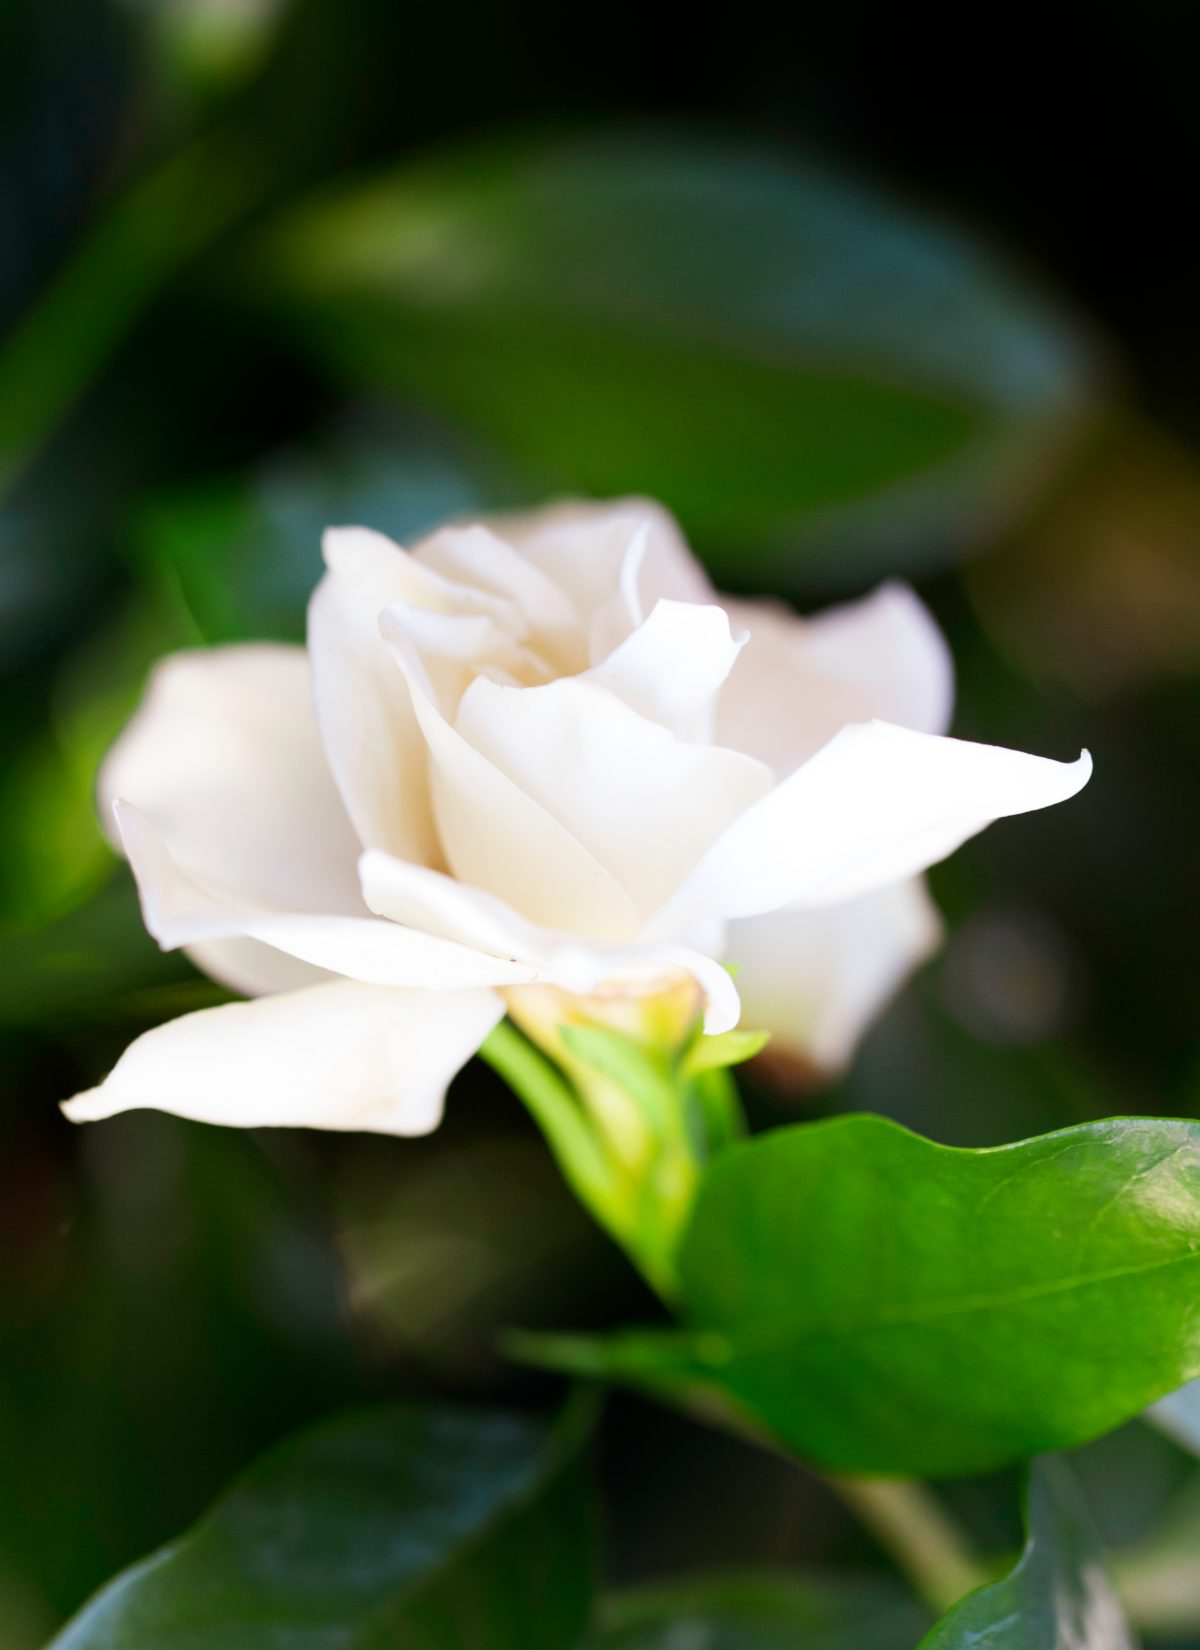 Single hazy gardenia flower